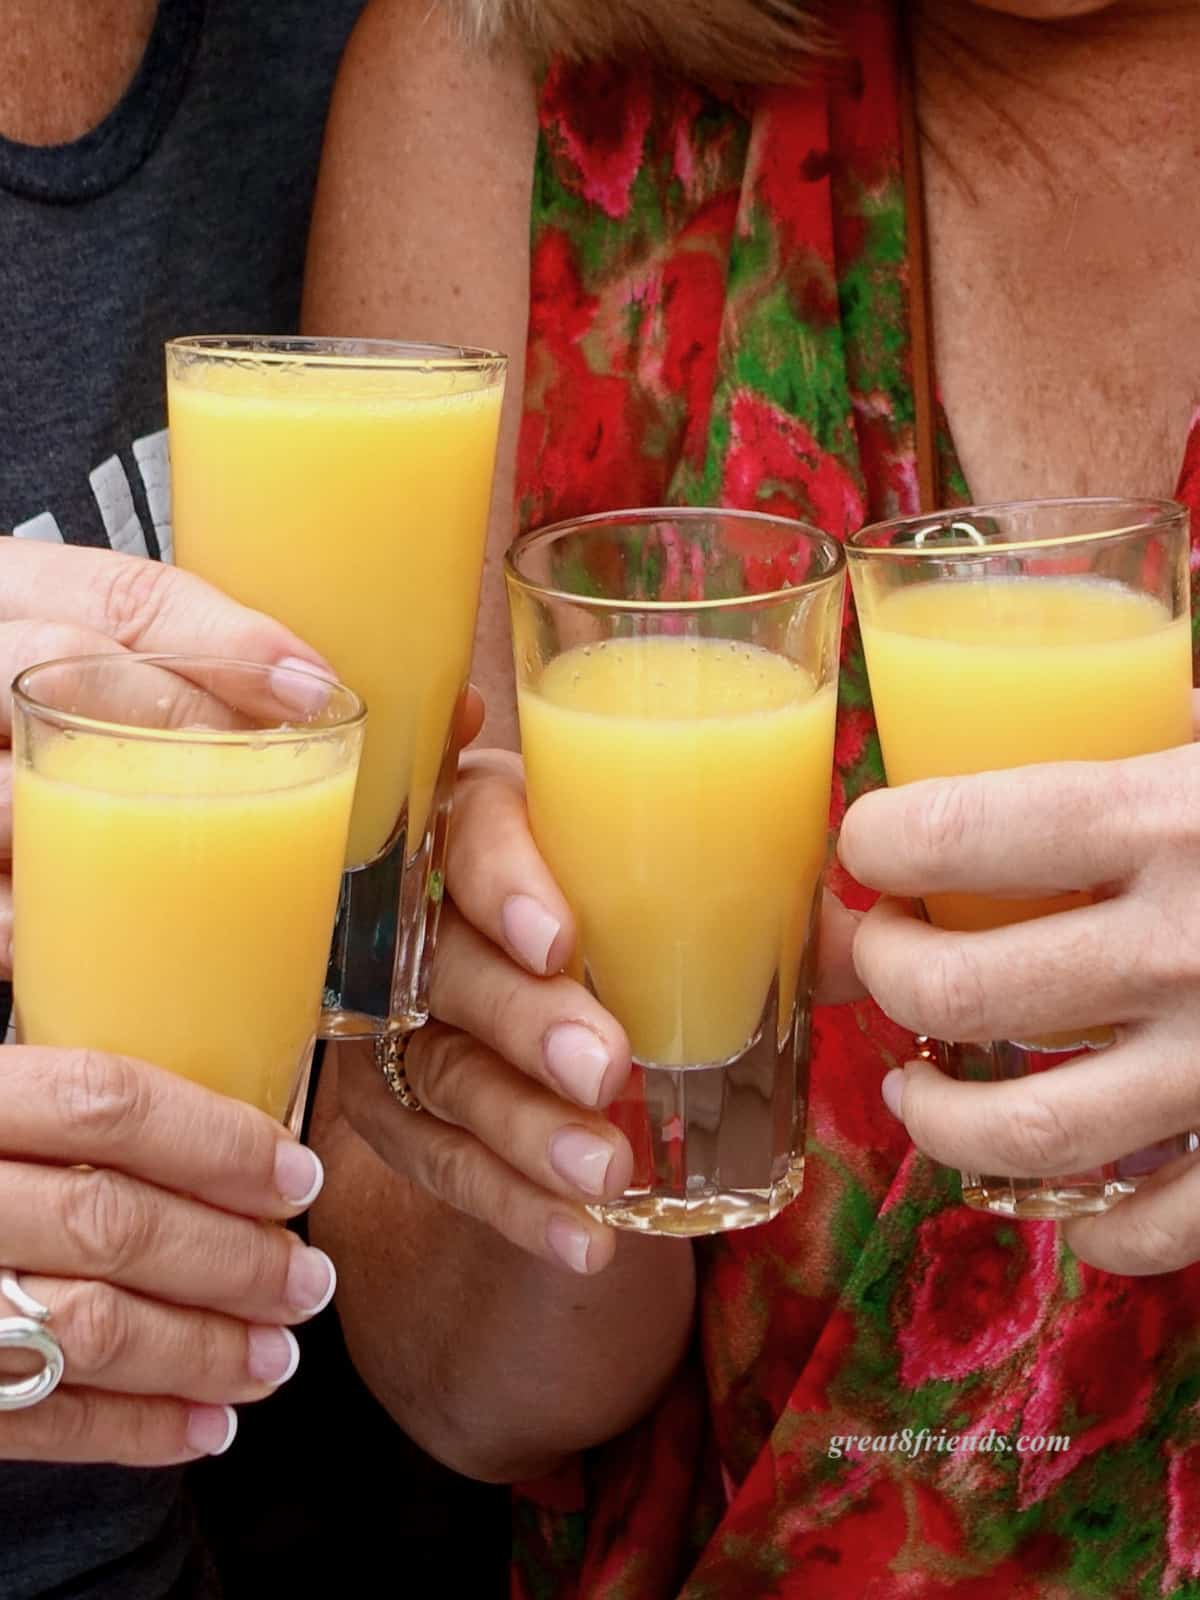 Four hands toasting glasses of mimosas.